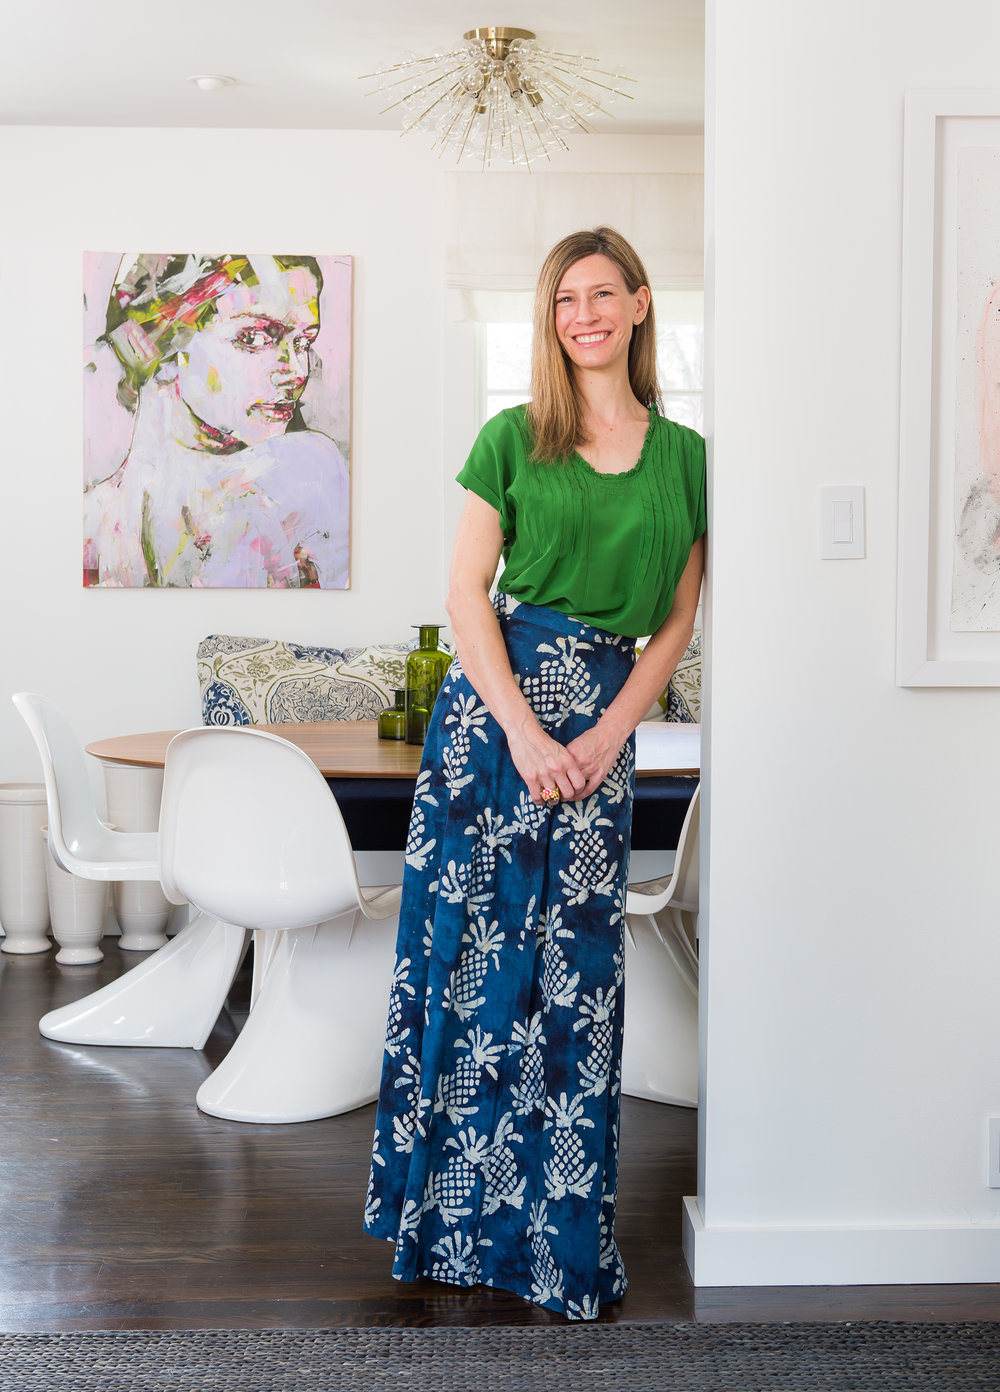 - since moving into interior design full time in 2014, beth was one of the 2014 atlanta homes & lifestyles bath of the year winners, designed two powder baths for the 2015 atlanta symphony orchestras show house and gardens, and designed the tasting area for chef digby stridiron for the 2016 kevin rathbun's ones to watch party for the atlanta food and wine festival.she has been published in traditional home, atlanta homes & lifestyles, atlanta magazine's HOME, and kitchen and bath makeovers.she has contributed to articles in the atlanta journal constitution newspaper, 17 south magazine, and krownlab.com's blog.her design work is featured in 2 books, 150 best new bathroom ideas and happy design, as well as numerous articles on houzz.com, nationally and internationally.